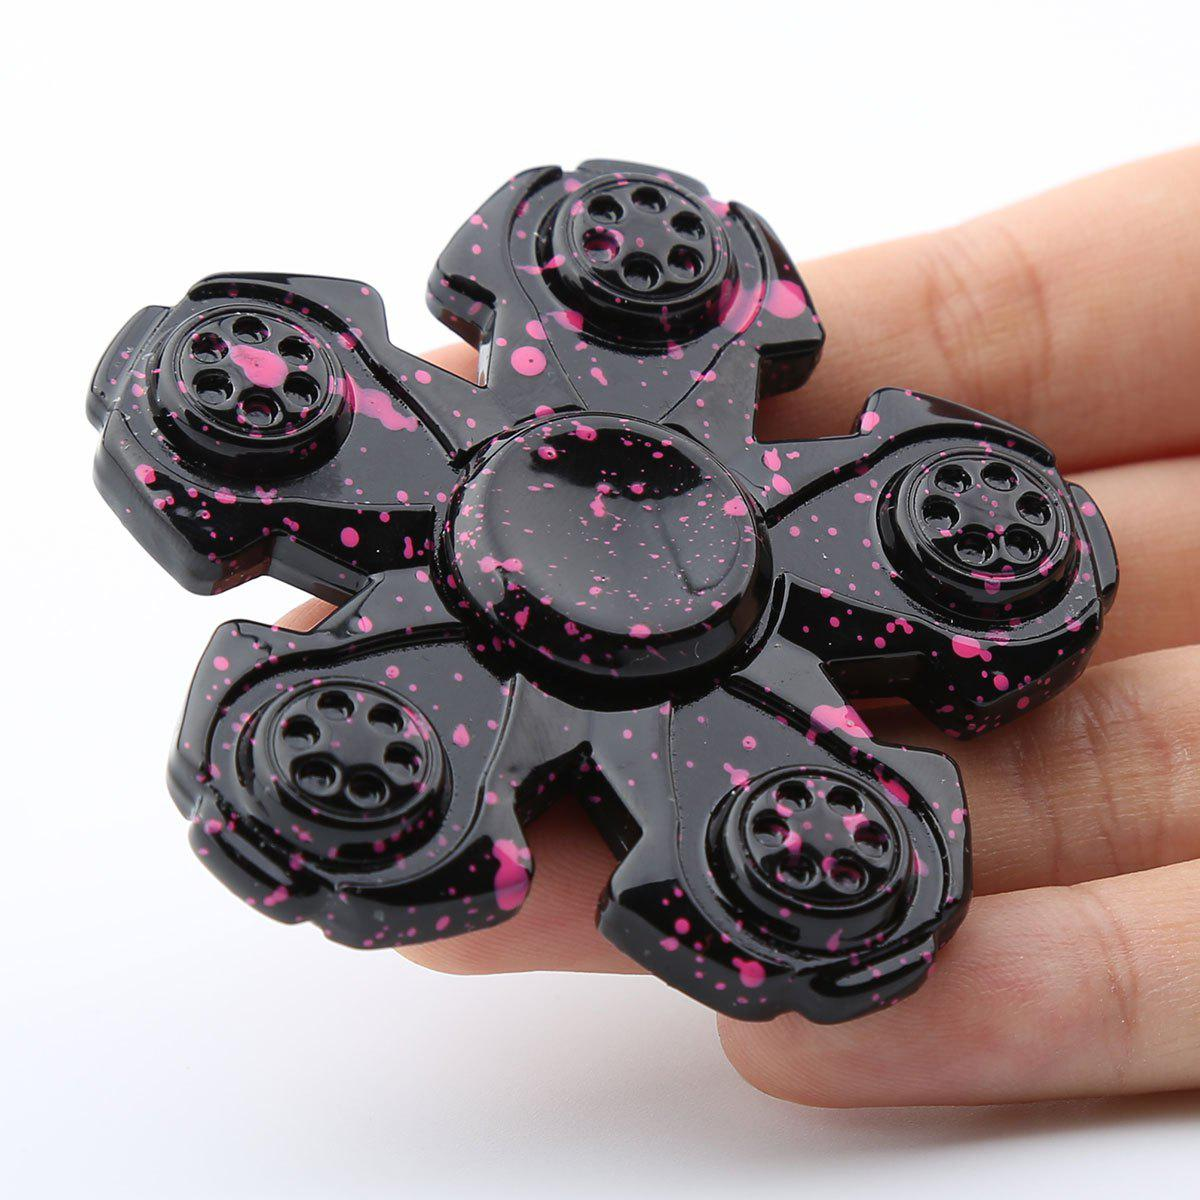 High Speed Bearing Fidget Spinner For Adult or Kids - BLACK 6.5*6.5*1.2CM